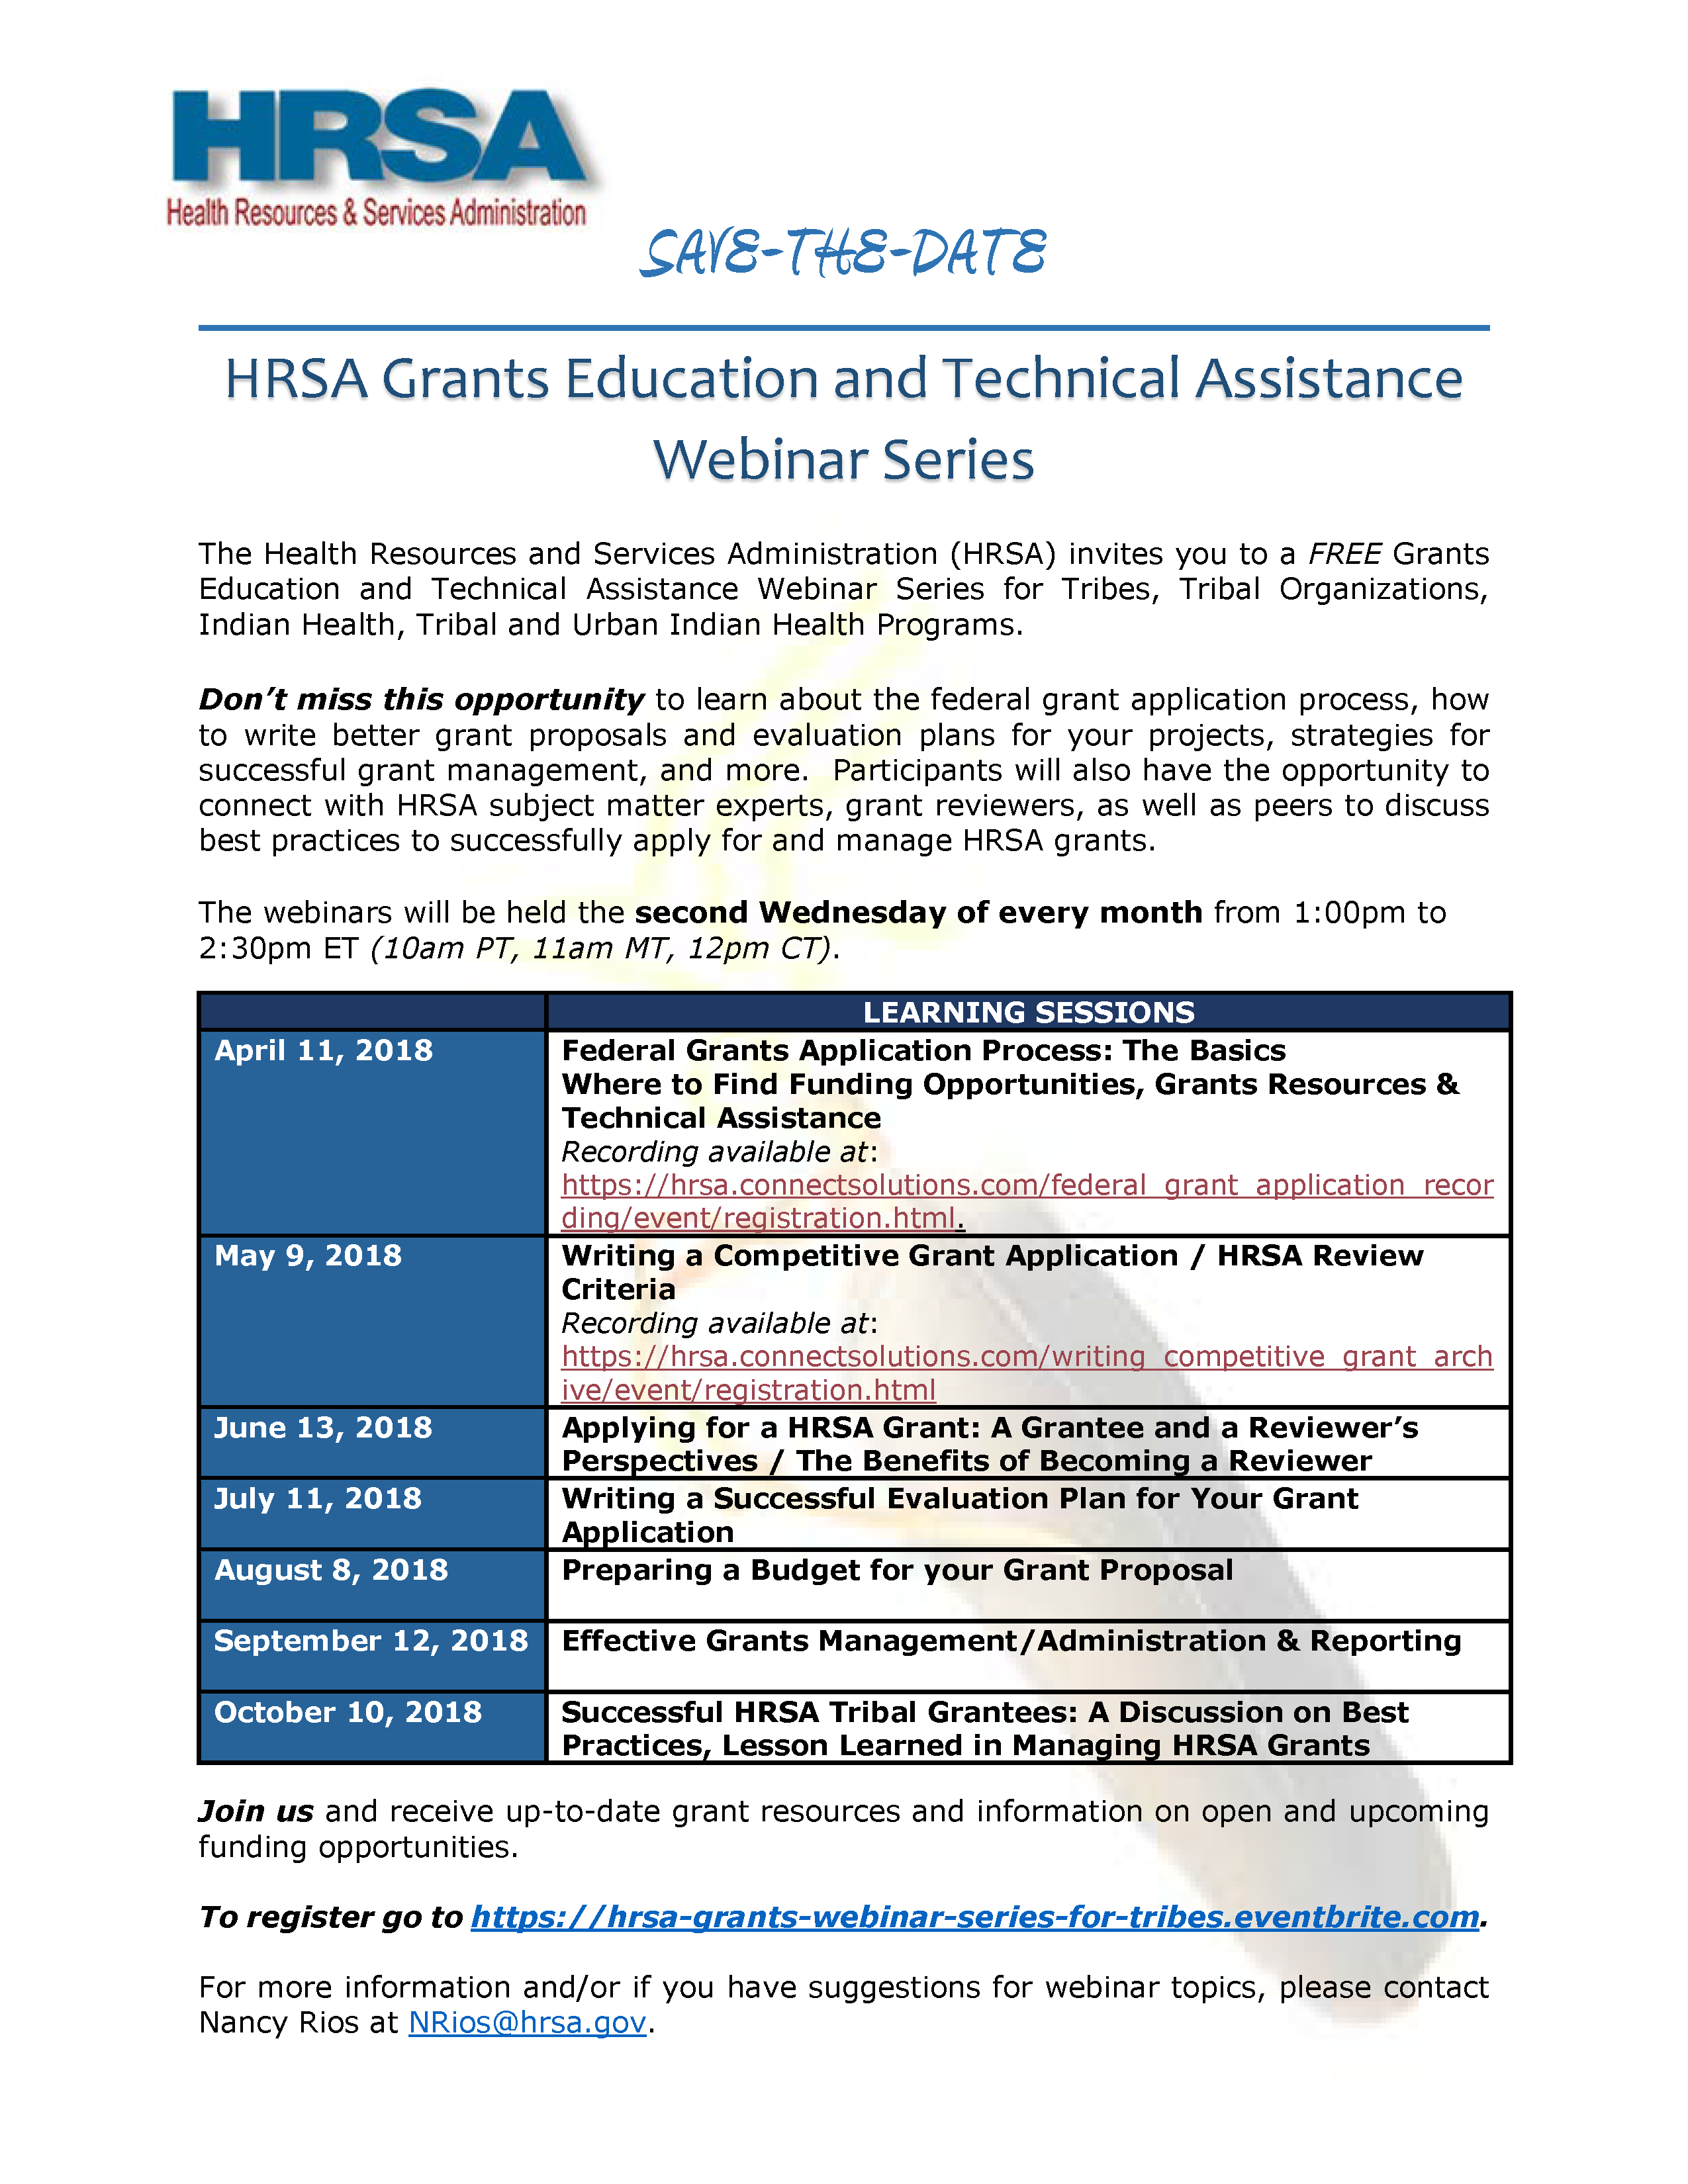 Grant Proposal | Hrsa Webinar Series Preparing A Budget For Your Grant Proposal Spthb